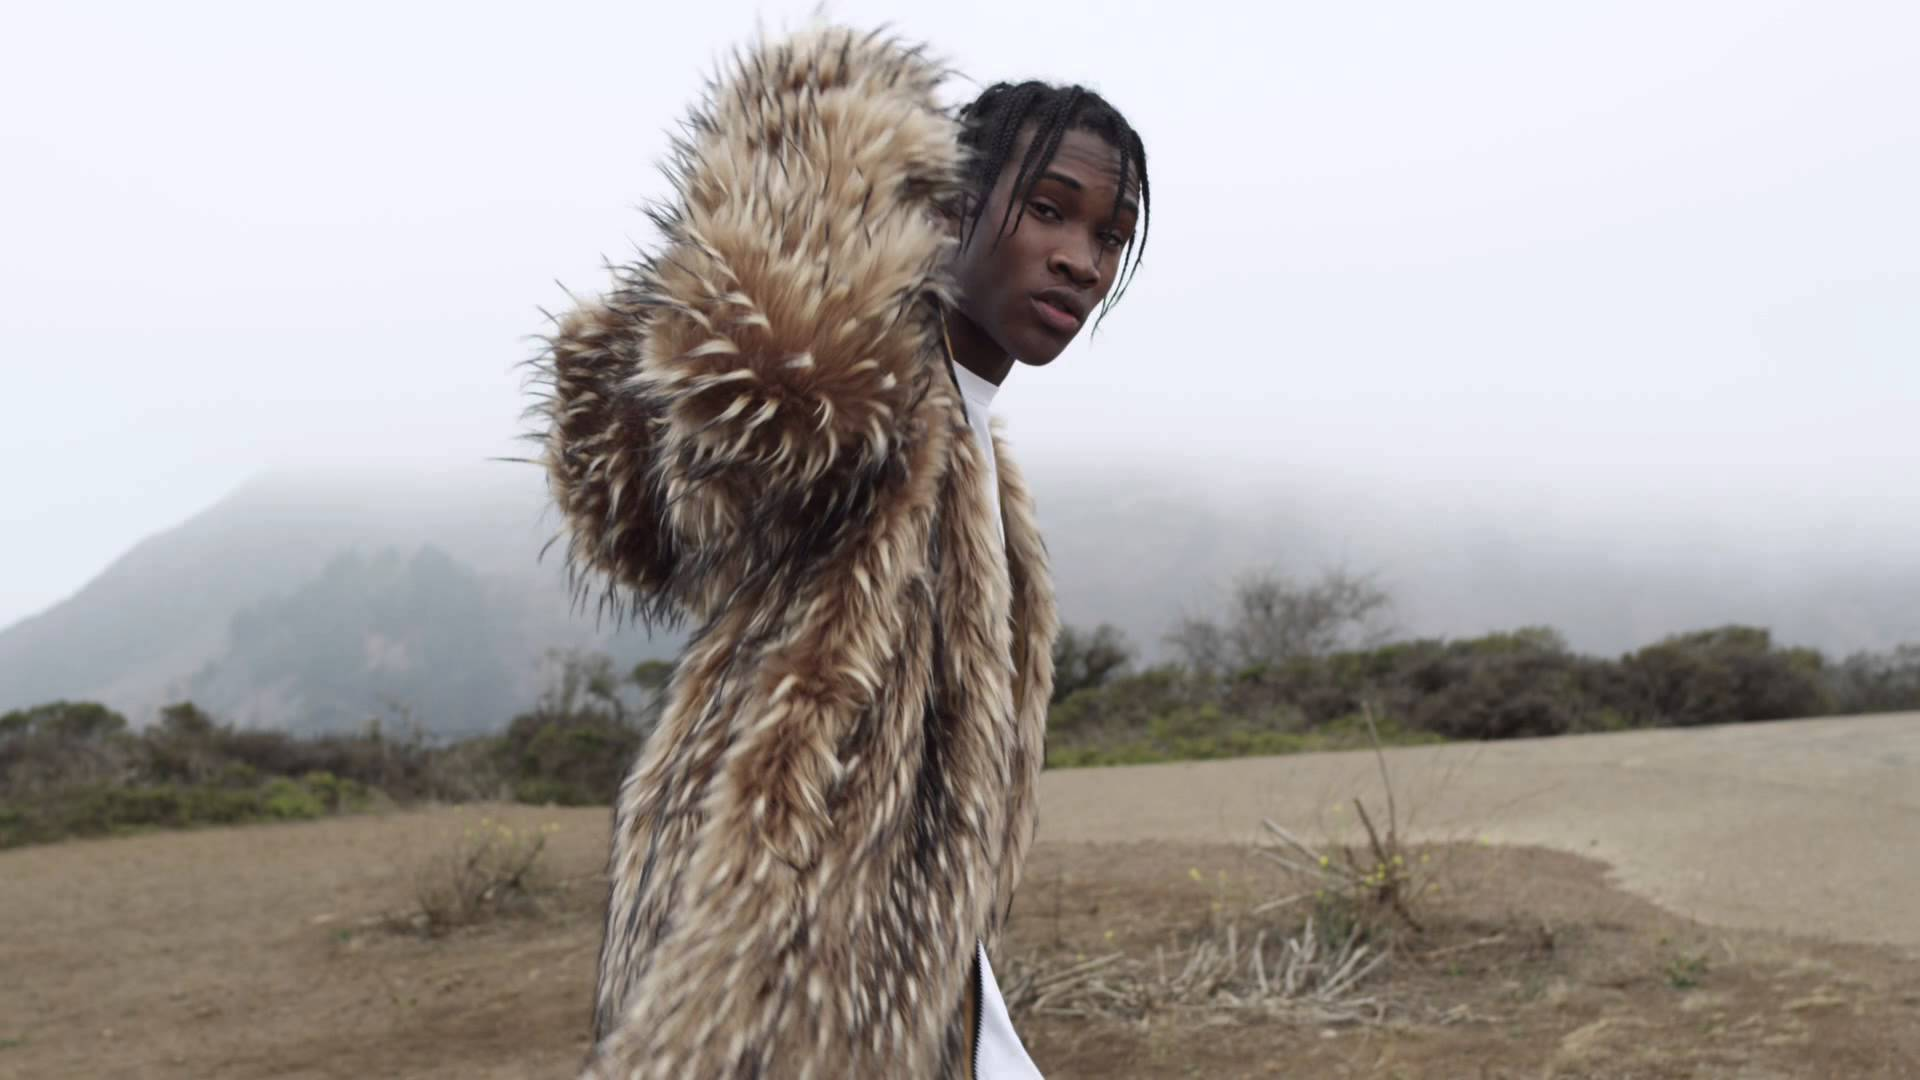 Pink Dolphin Holiday 2015 Lookbook (Video)